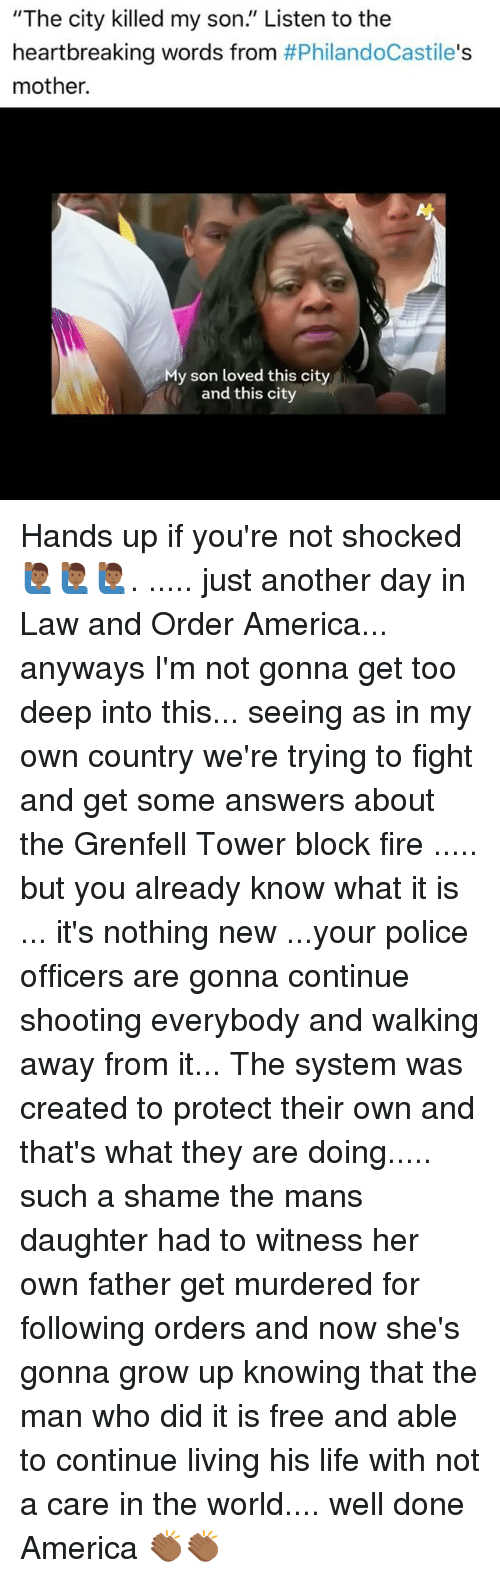 "America, Fire, and Life: ""The city killed my son,"" Listen to the  heartbreaking words from  #PhilandoCastile's  mother.  My son loved this city  and this city Hands up if you're not shocked 🙋🏾‍♂️🙋🏾‍♂️🙋🏾‍♂️. ..... just another day in Law and Order America... anyways I'm not gonna get too deep into this... seeing as in my own country we're trying to fight and get some answers about the Grenfell Tower block fire ..... but you already know what it is ... it's nothing new ...your police officers are gonna continue shooting everybody and walking away from it... The system was created to protect their own and that's what they are doing..... such a shame the mans daughter had to witness her own father get murdered for following orders and now she's gonna grow up knowing that the man who did it is free and able to continue living his life with not a care in the world.... well done America 👏🏾👏🏾"